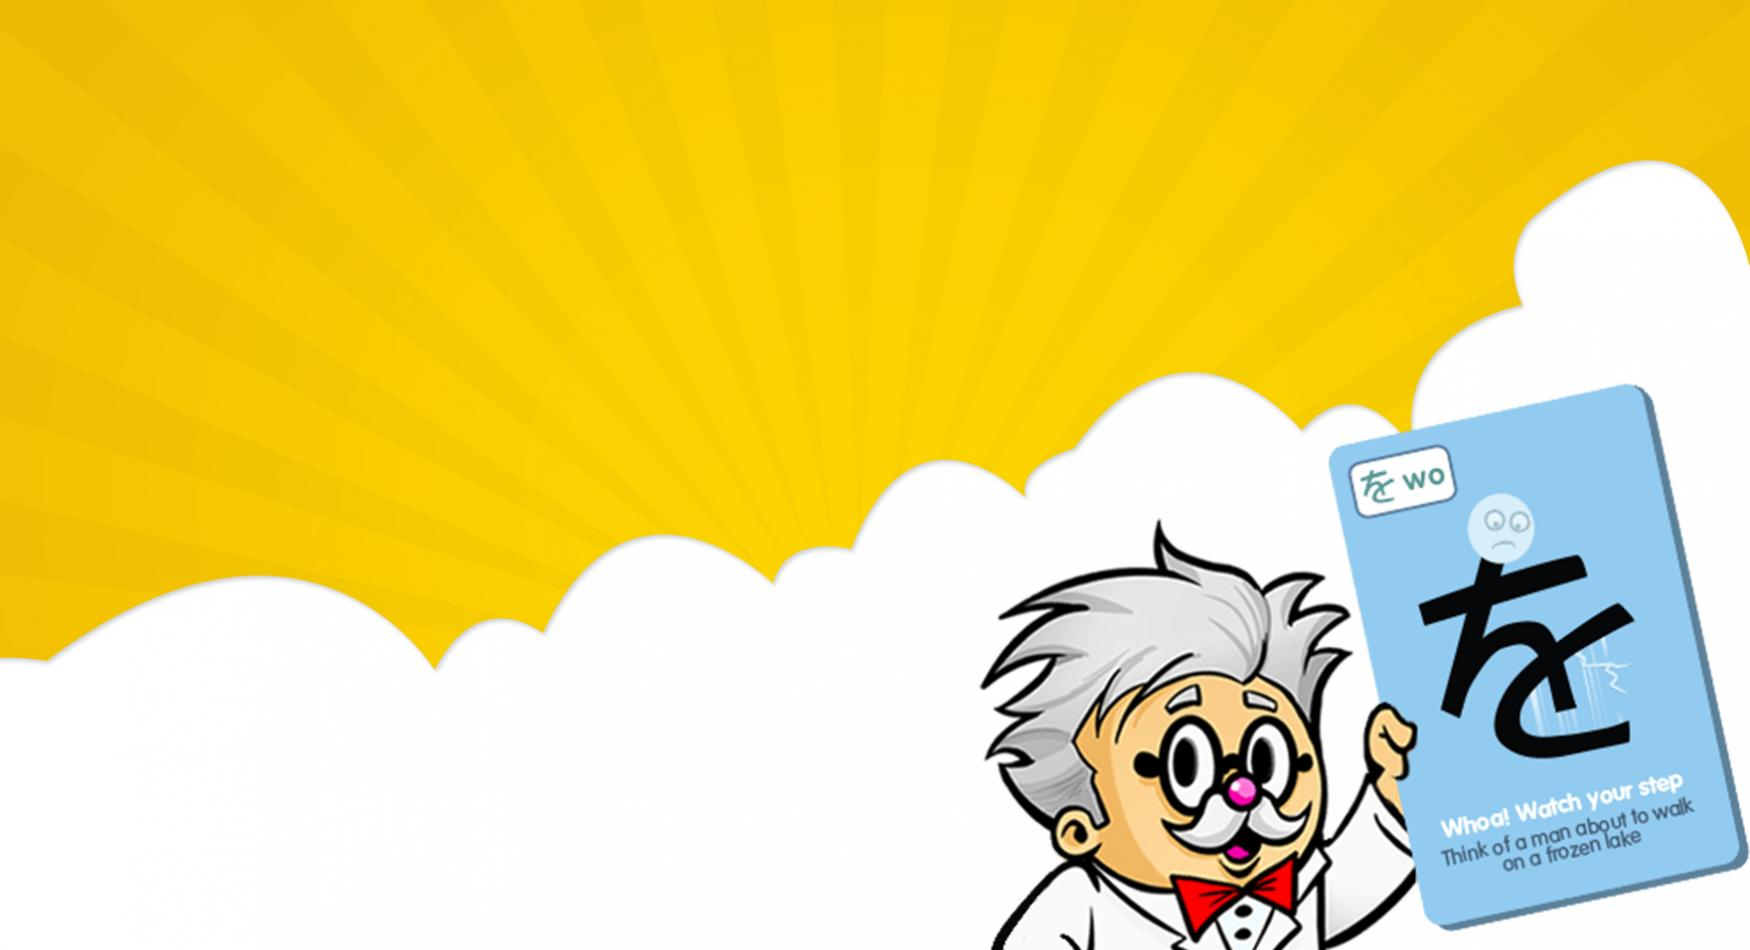 E Learning Cartoon Characters : Toddler boy doing speech game exercises on letter e learning